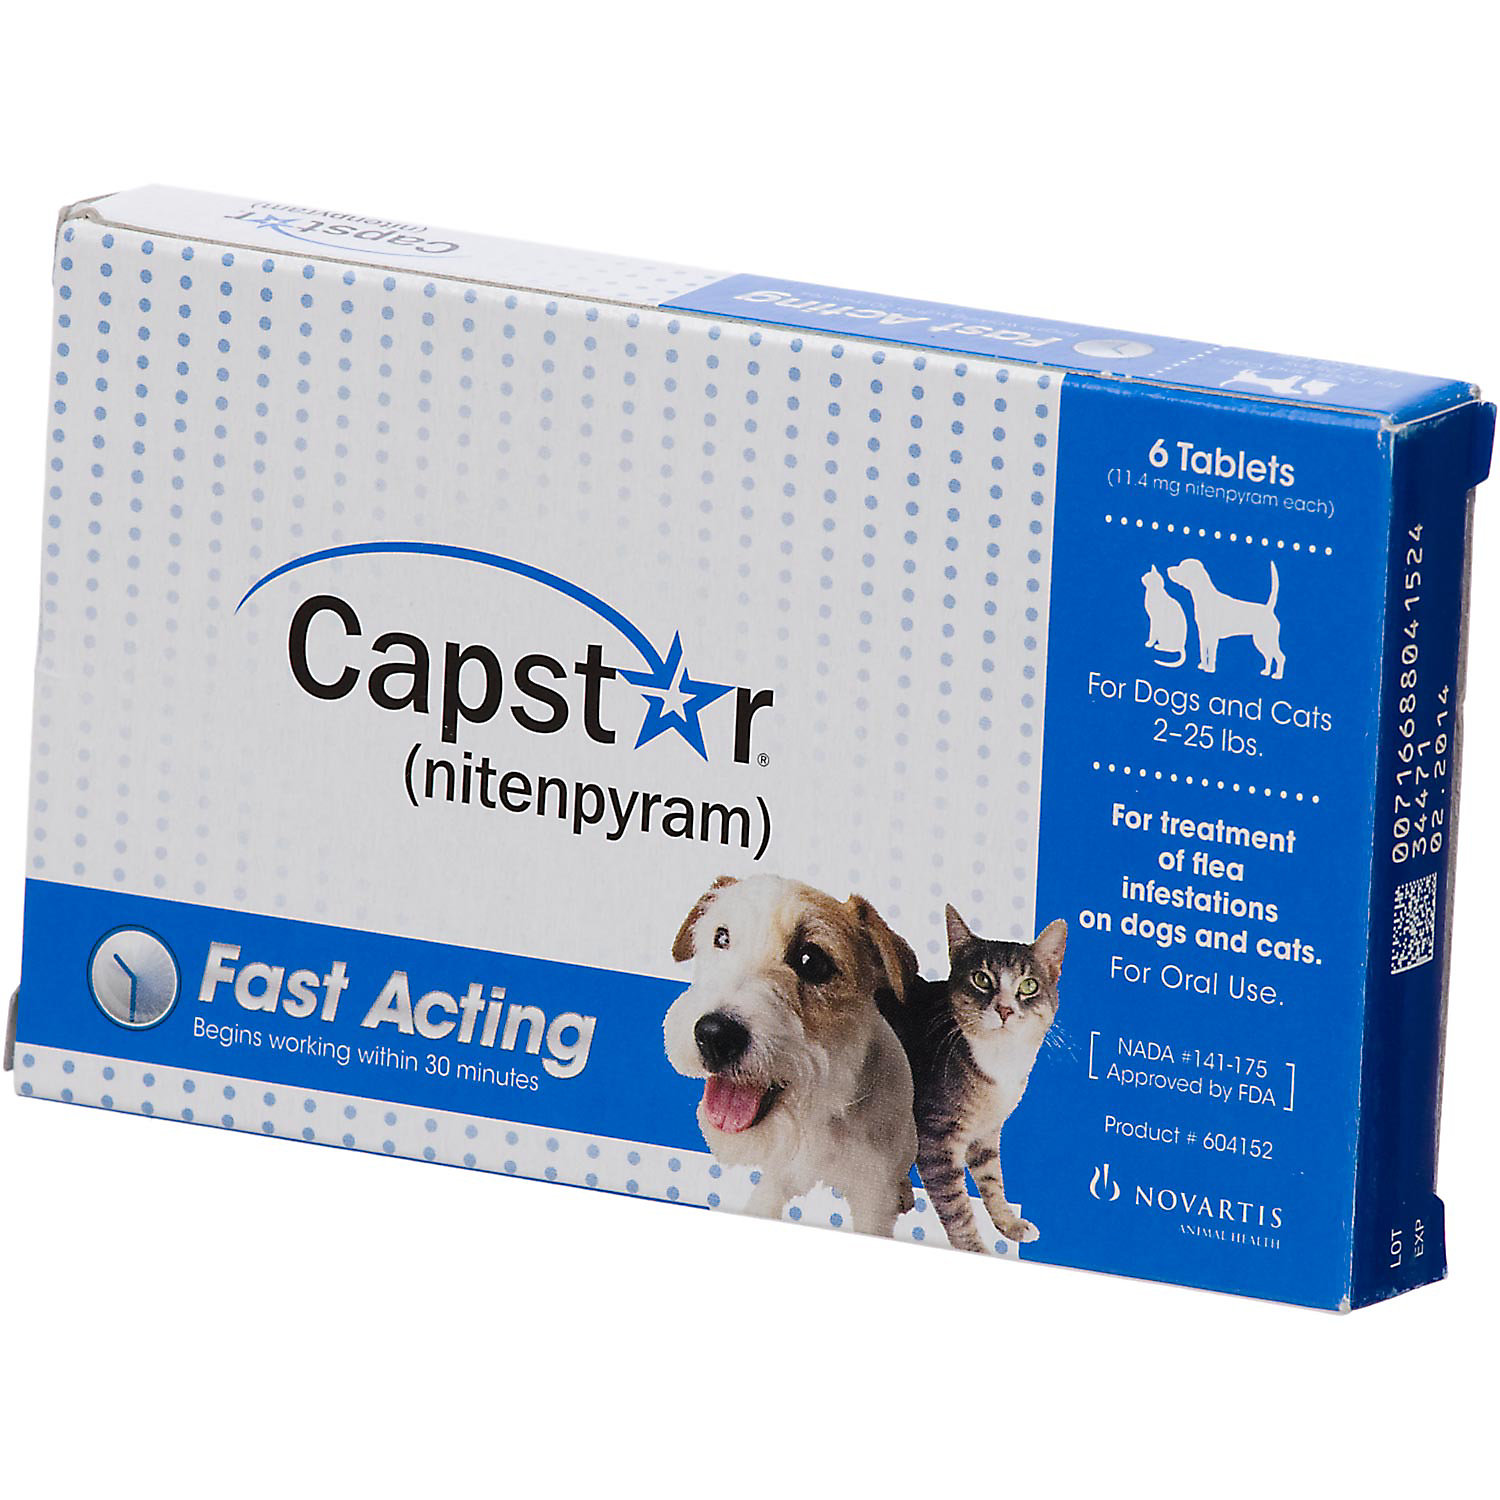 Capstar Flea Tablets for Dogs and Cats, 2-25 lbs.–PETCO-Cash Back